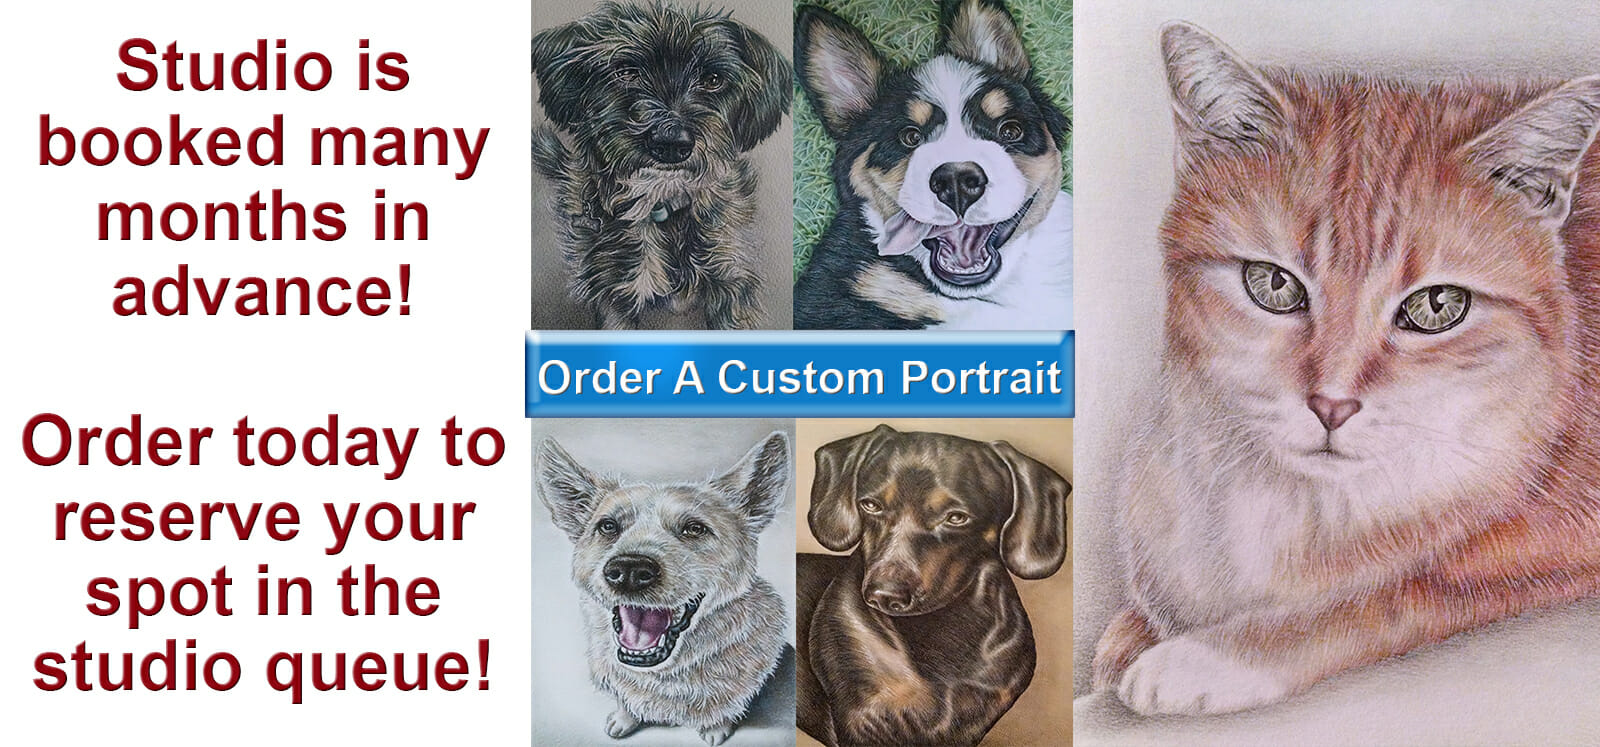 Order Custom Portrait Today